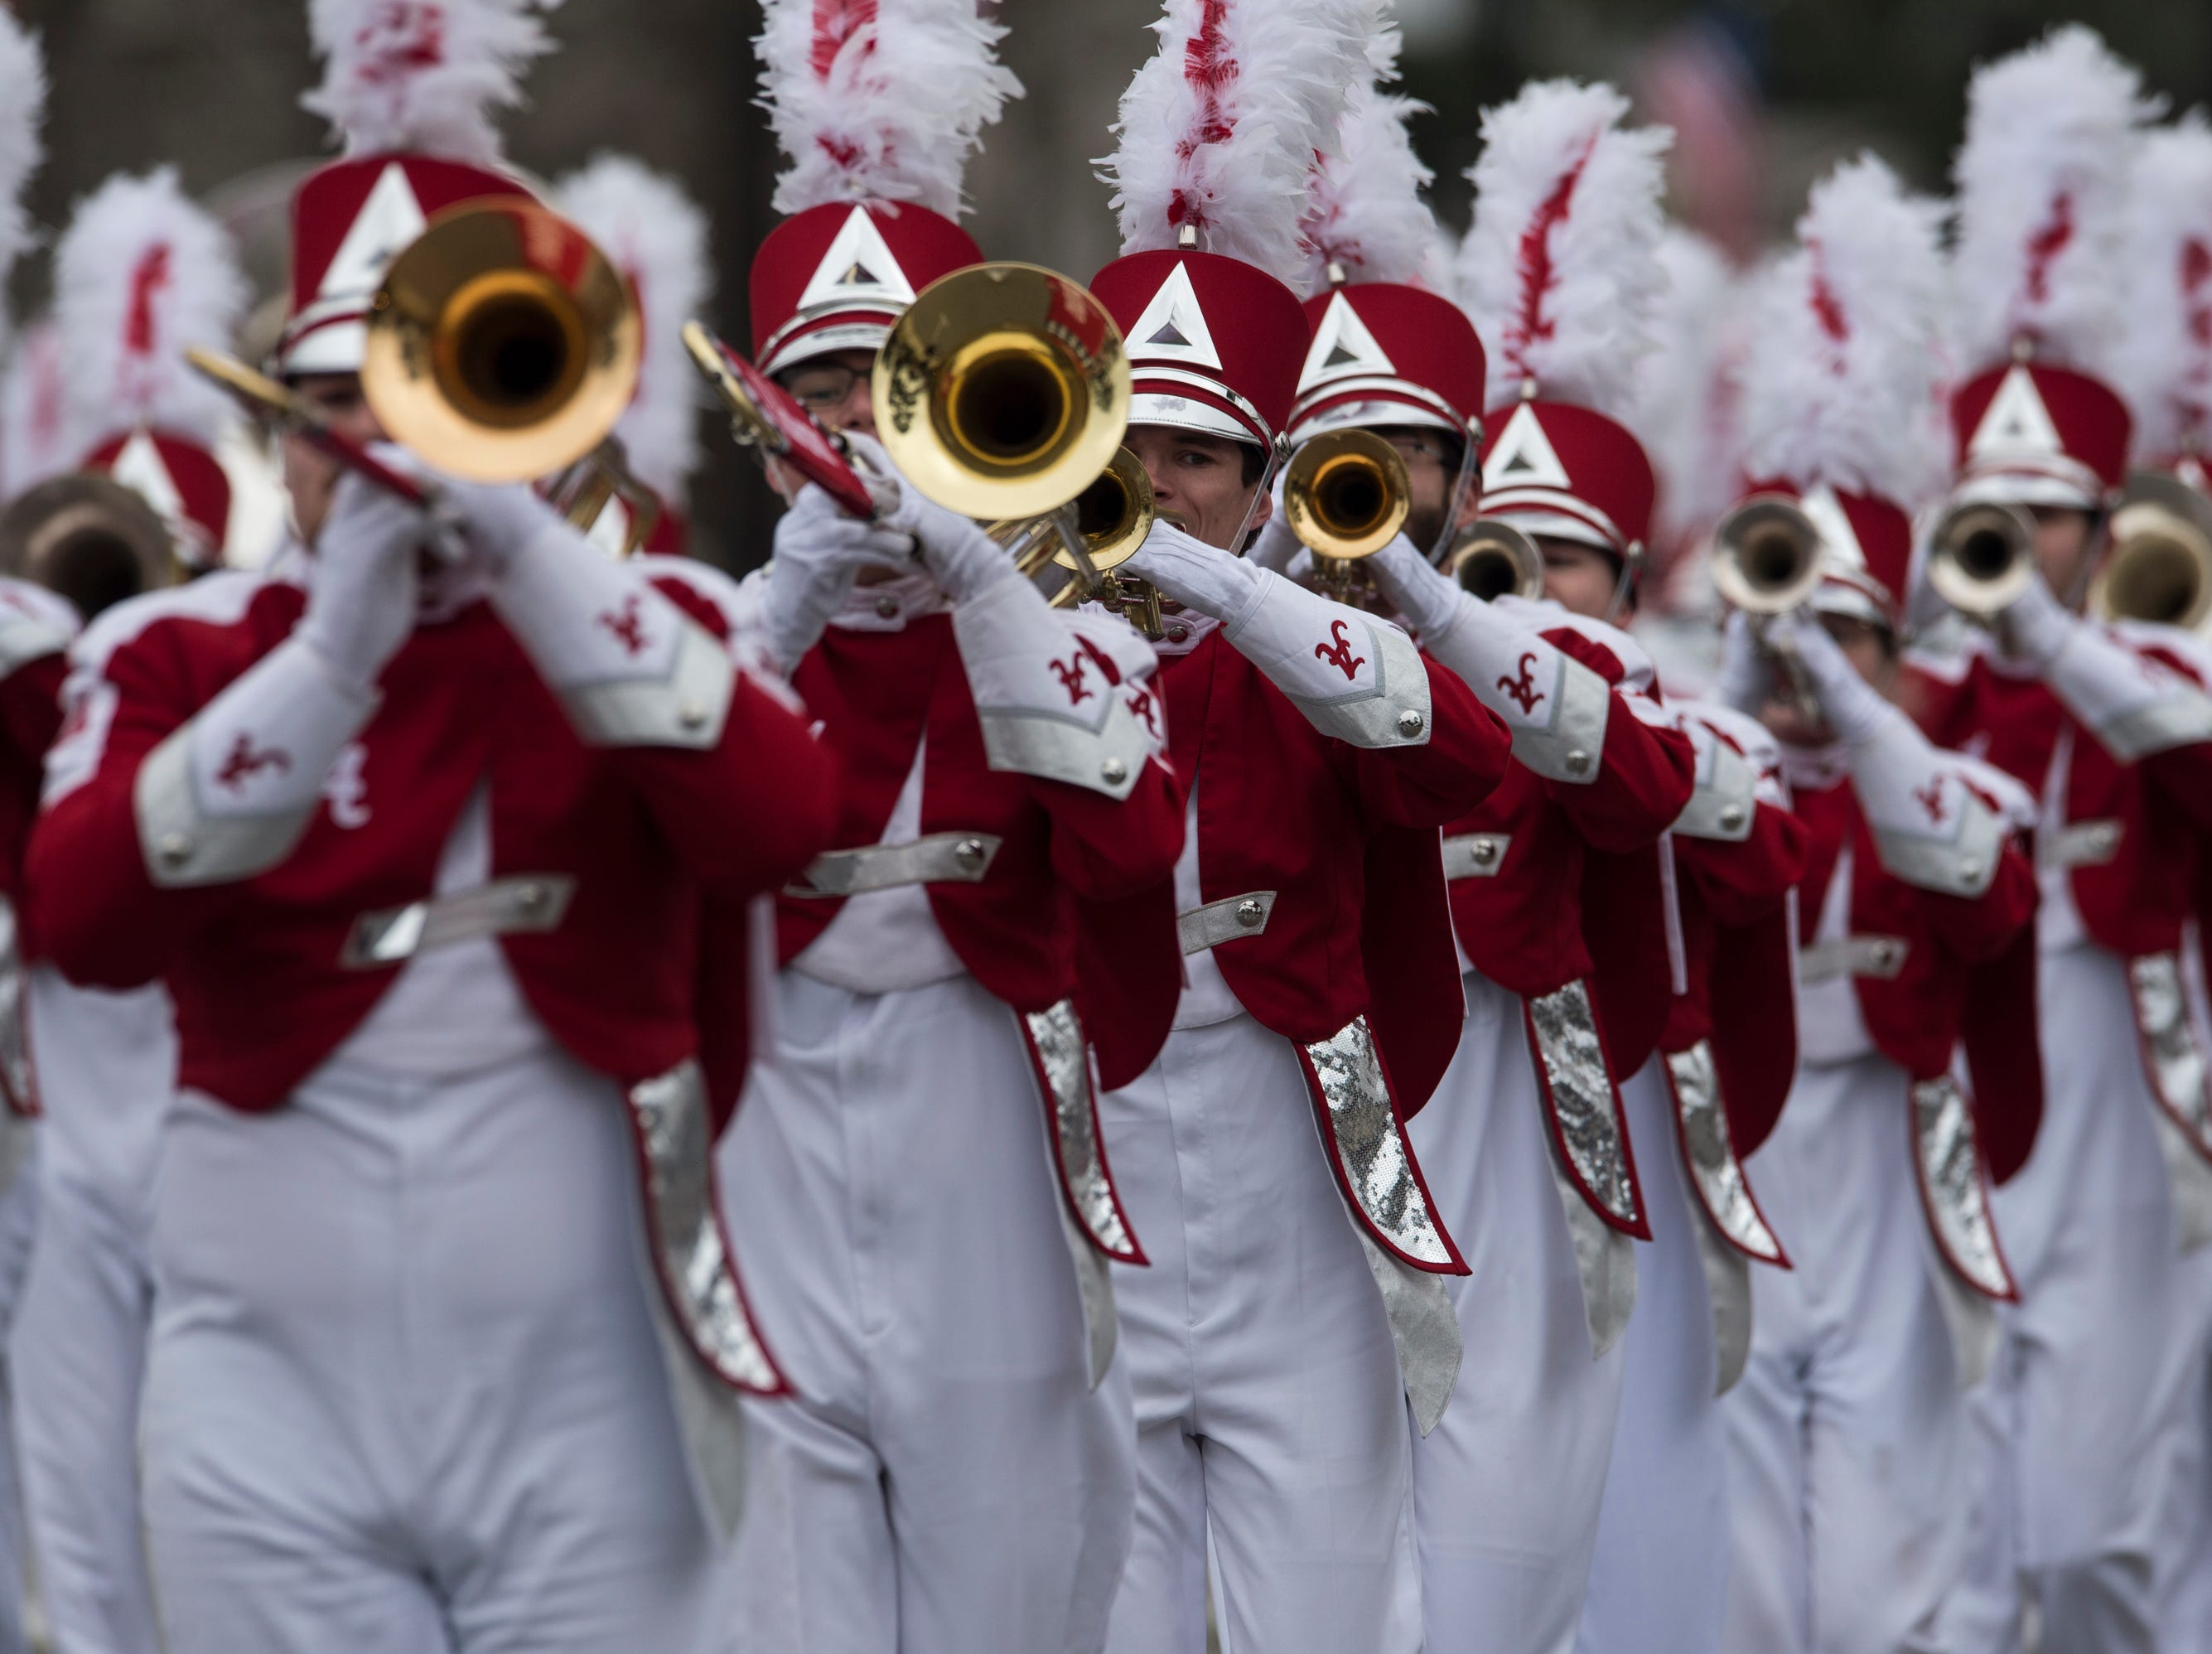 Alabama University marching band plays during the inauguration day parade in Montgomery, Ala., on Monday, Jan. 14, 2019.